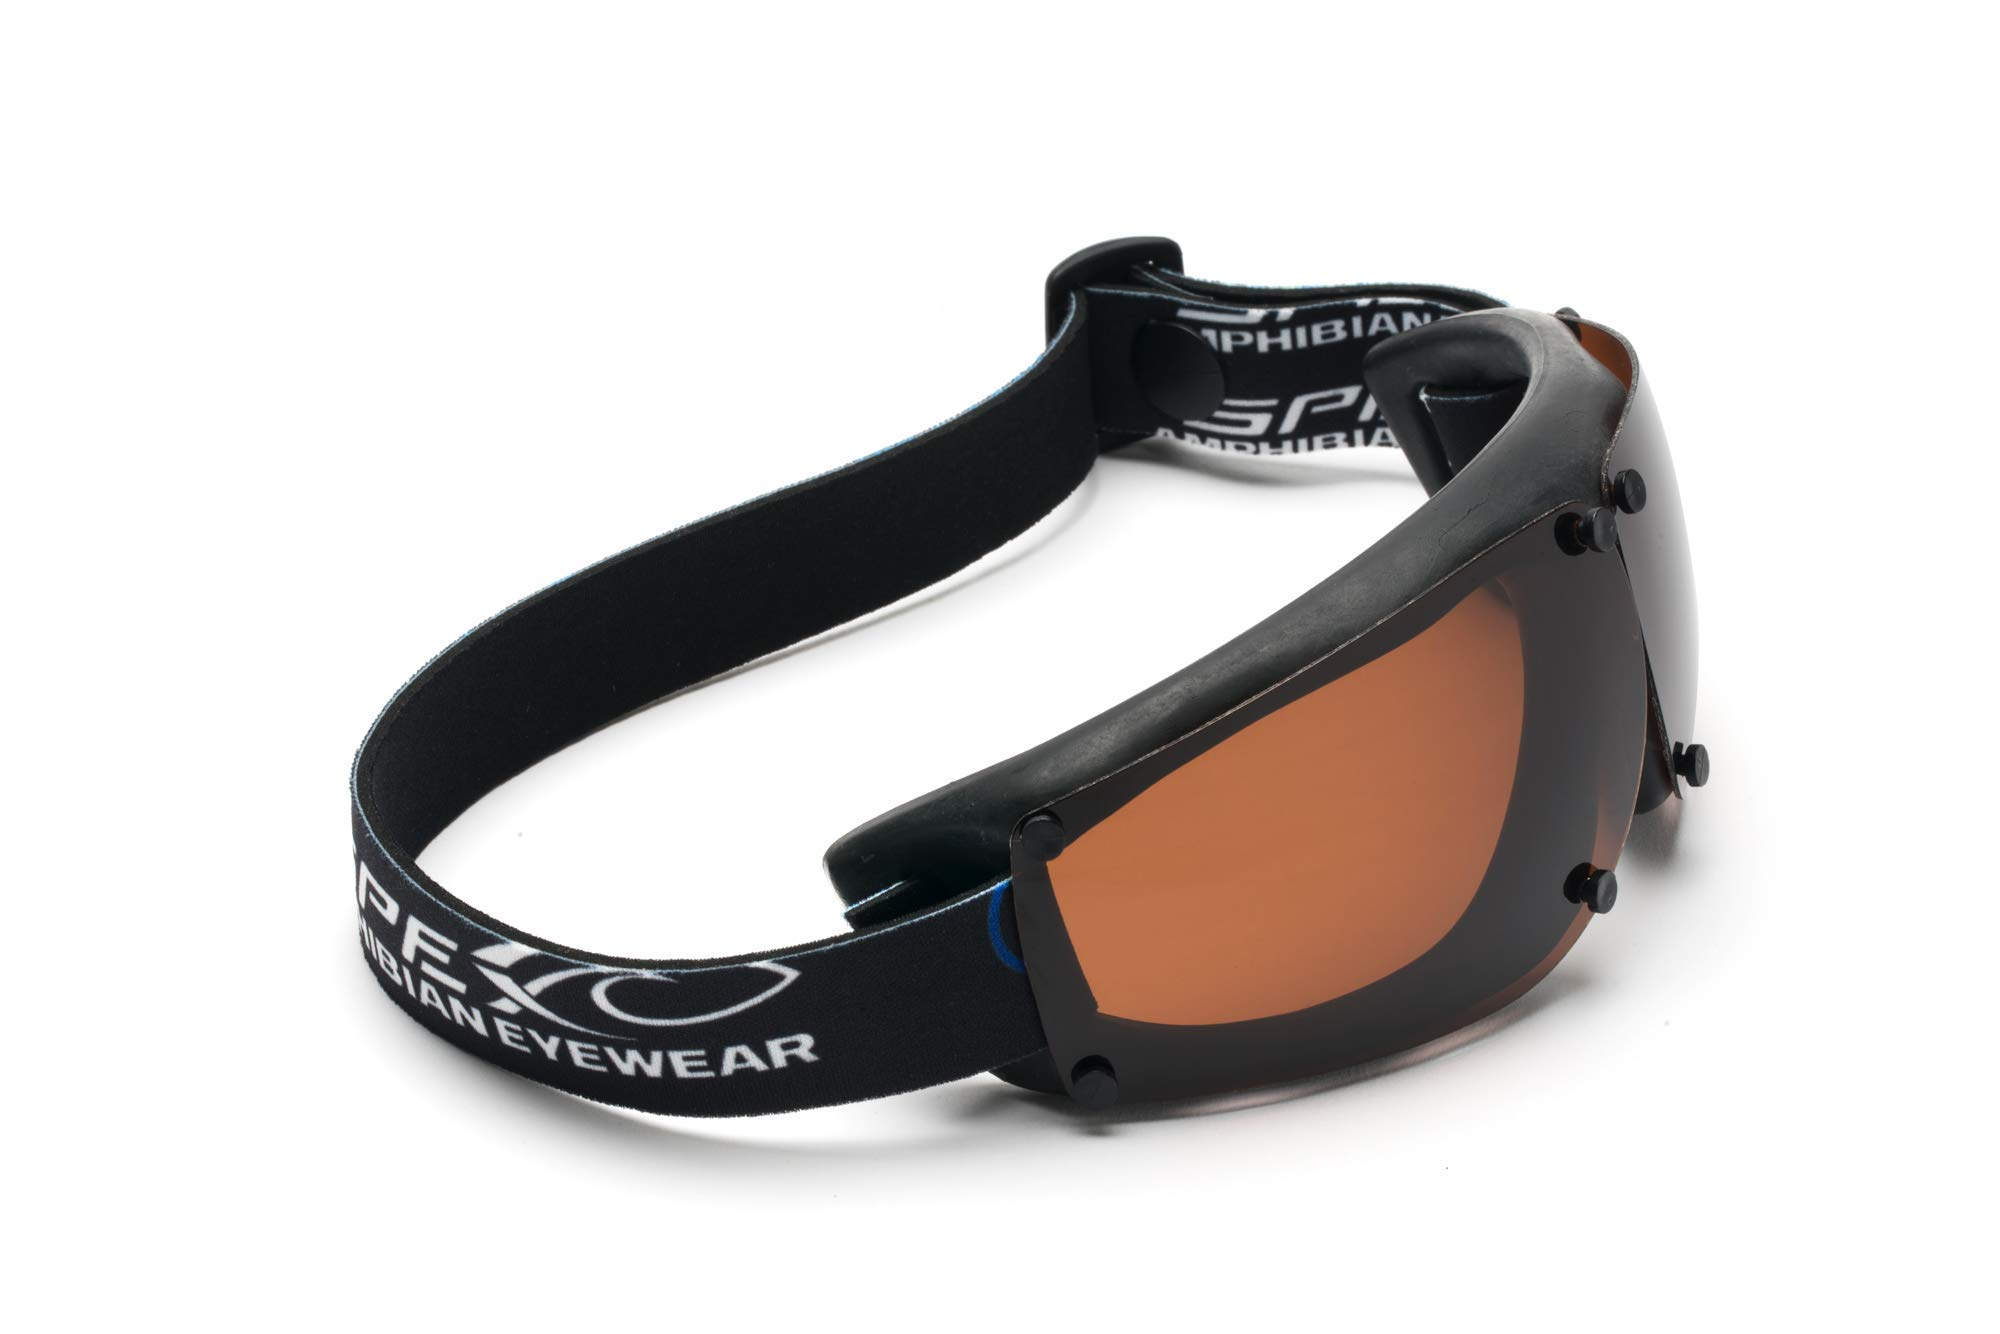 Spex Amphibian Eyewear Black With All W Buy Online In Albania At Desertcart The weather data that we use to produce our weather forecast charts come from the most trusted and reliable sources available. desertcart